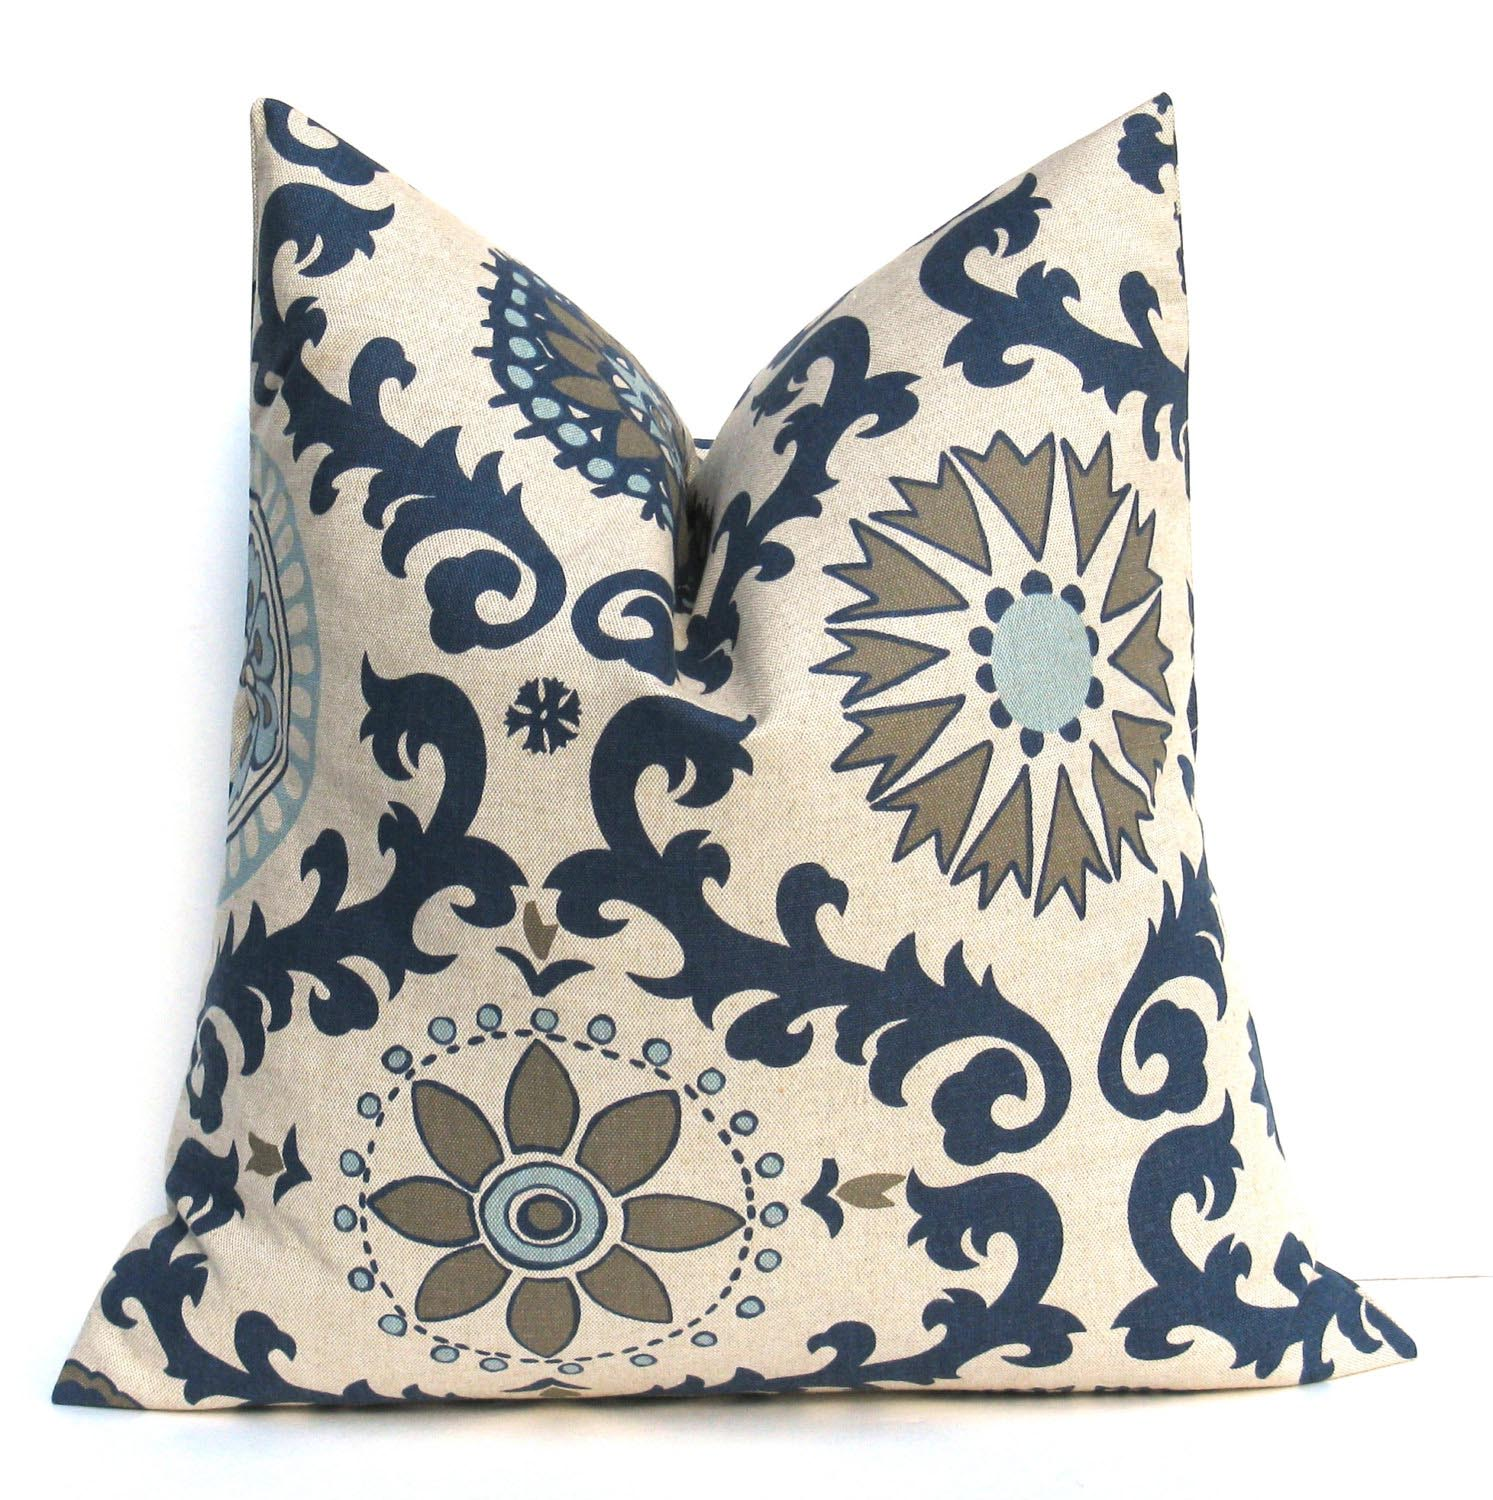 Blue Down Throw Pillows : Navy Blue Decorative Pillows Best Decor Things